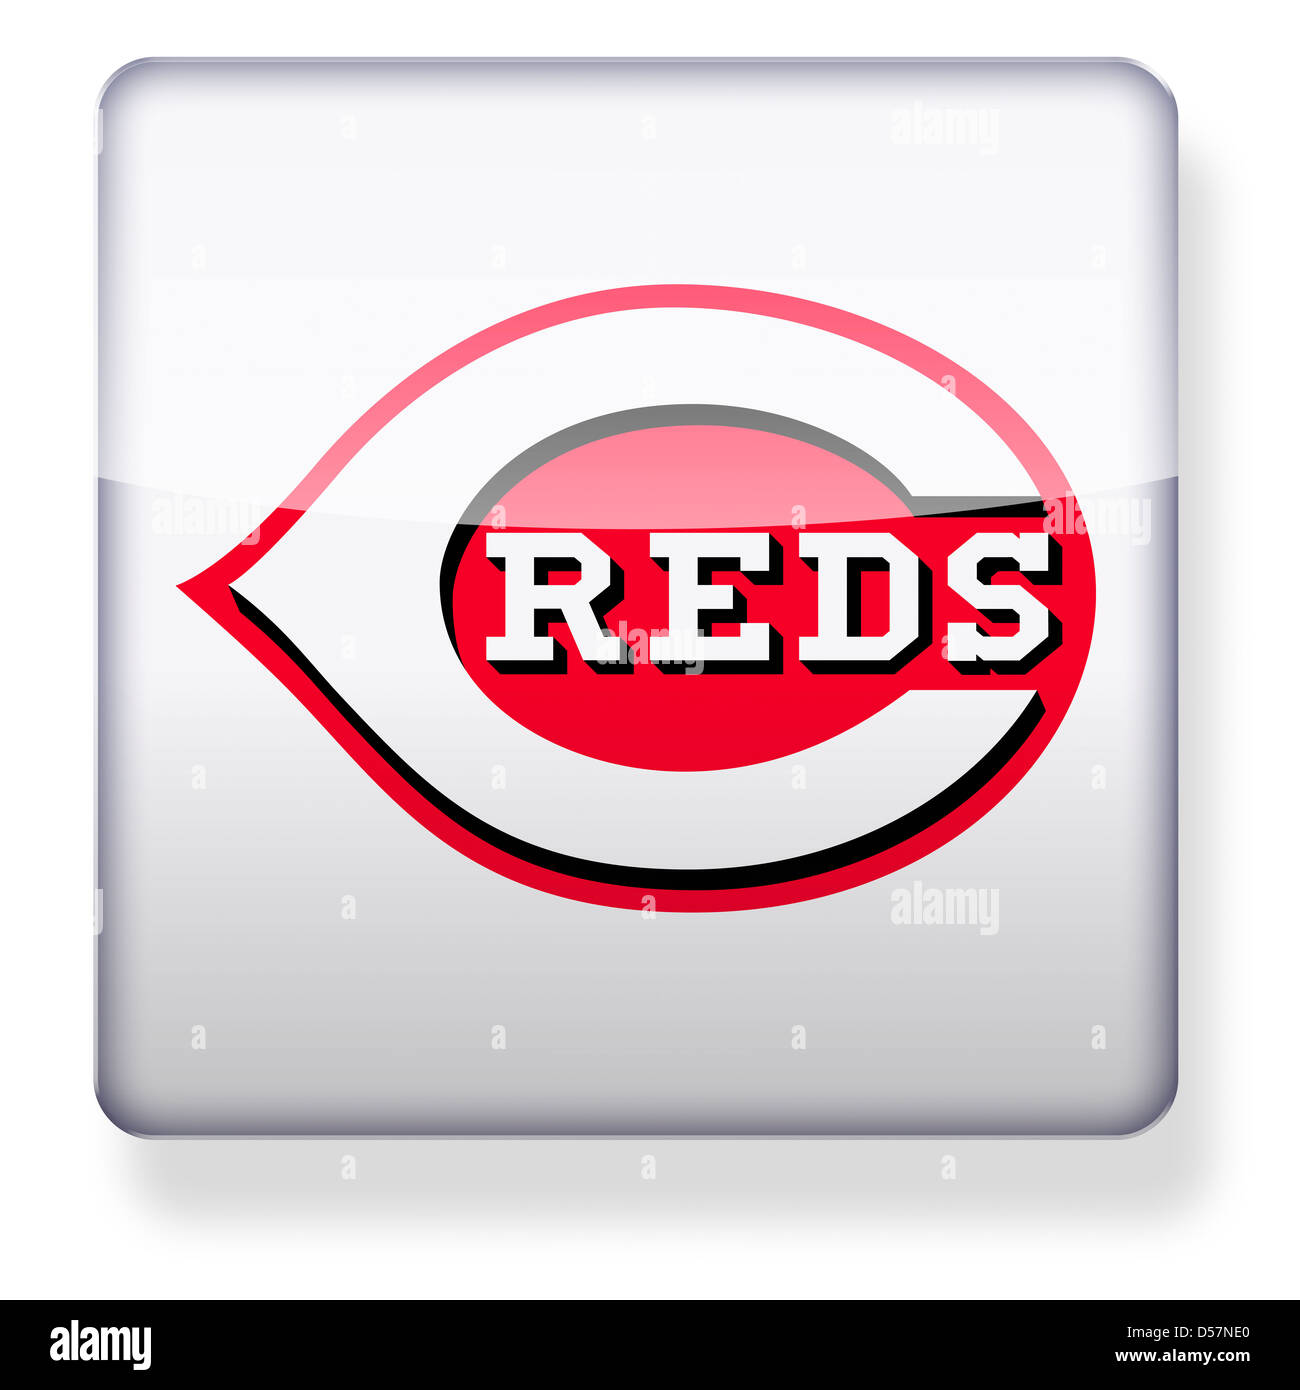 Cincinnati Reds logo as an app icon. Clipping path included. - Stock Image